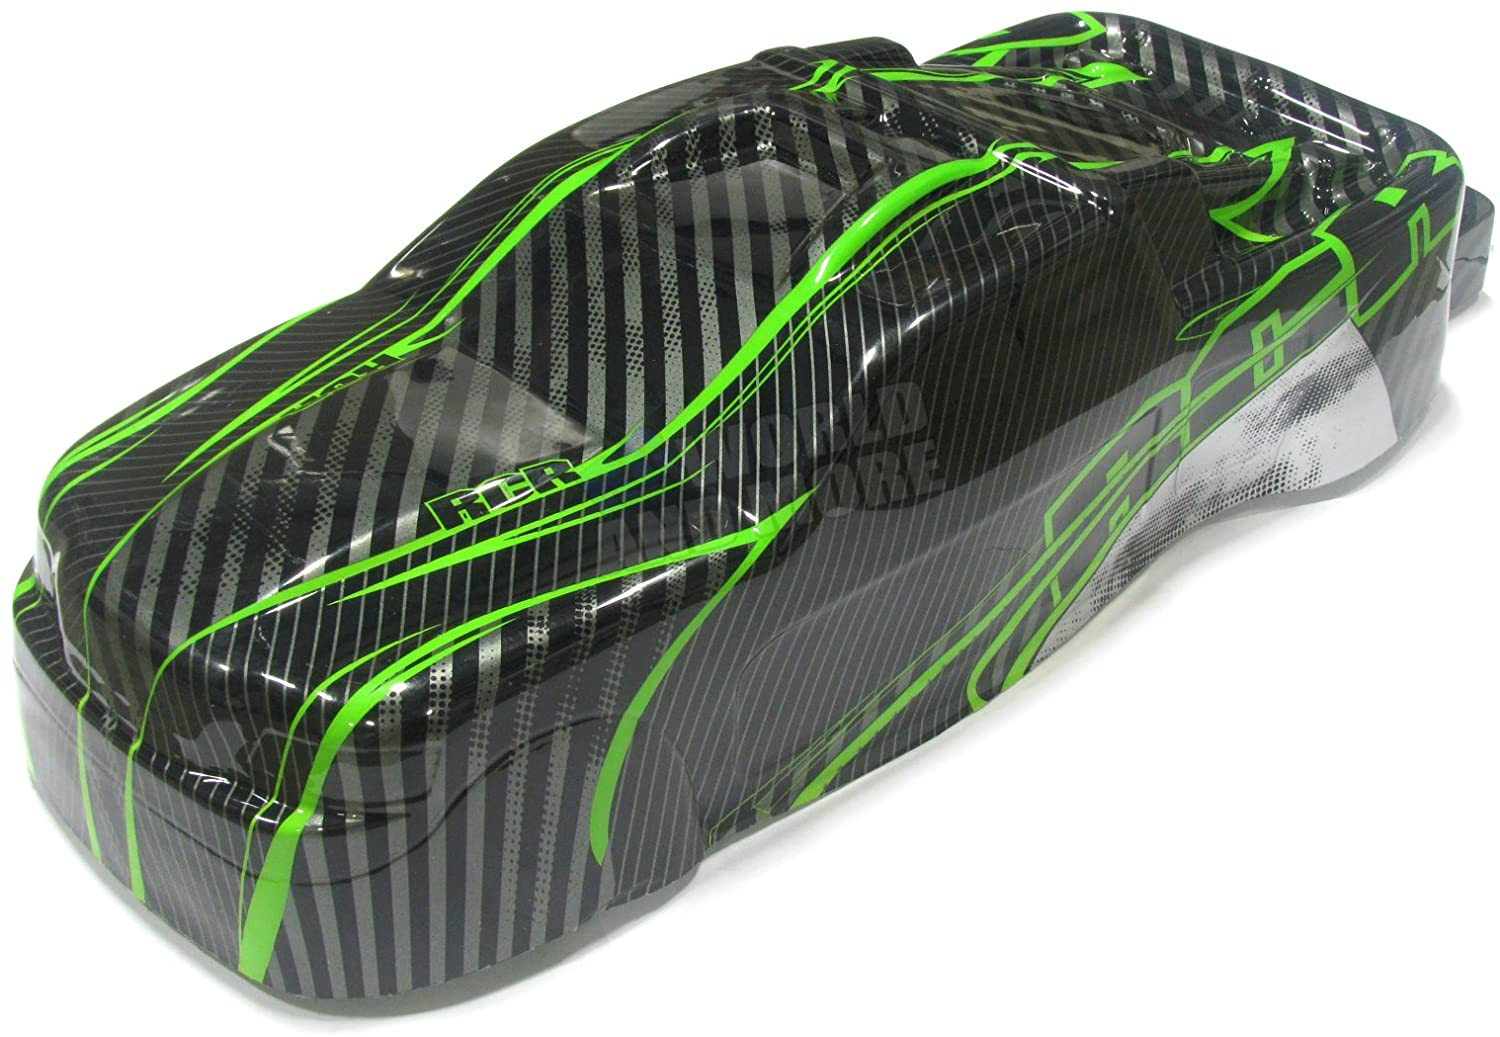 Redcat Racing BS801-017G Earthquake Body, Green/Black